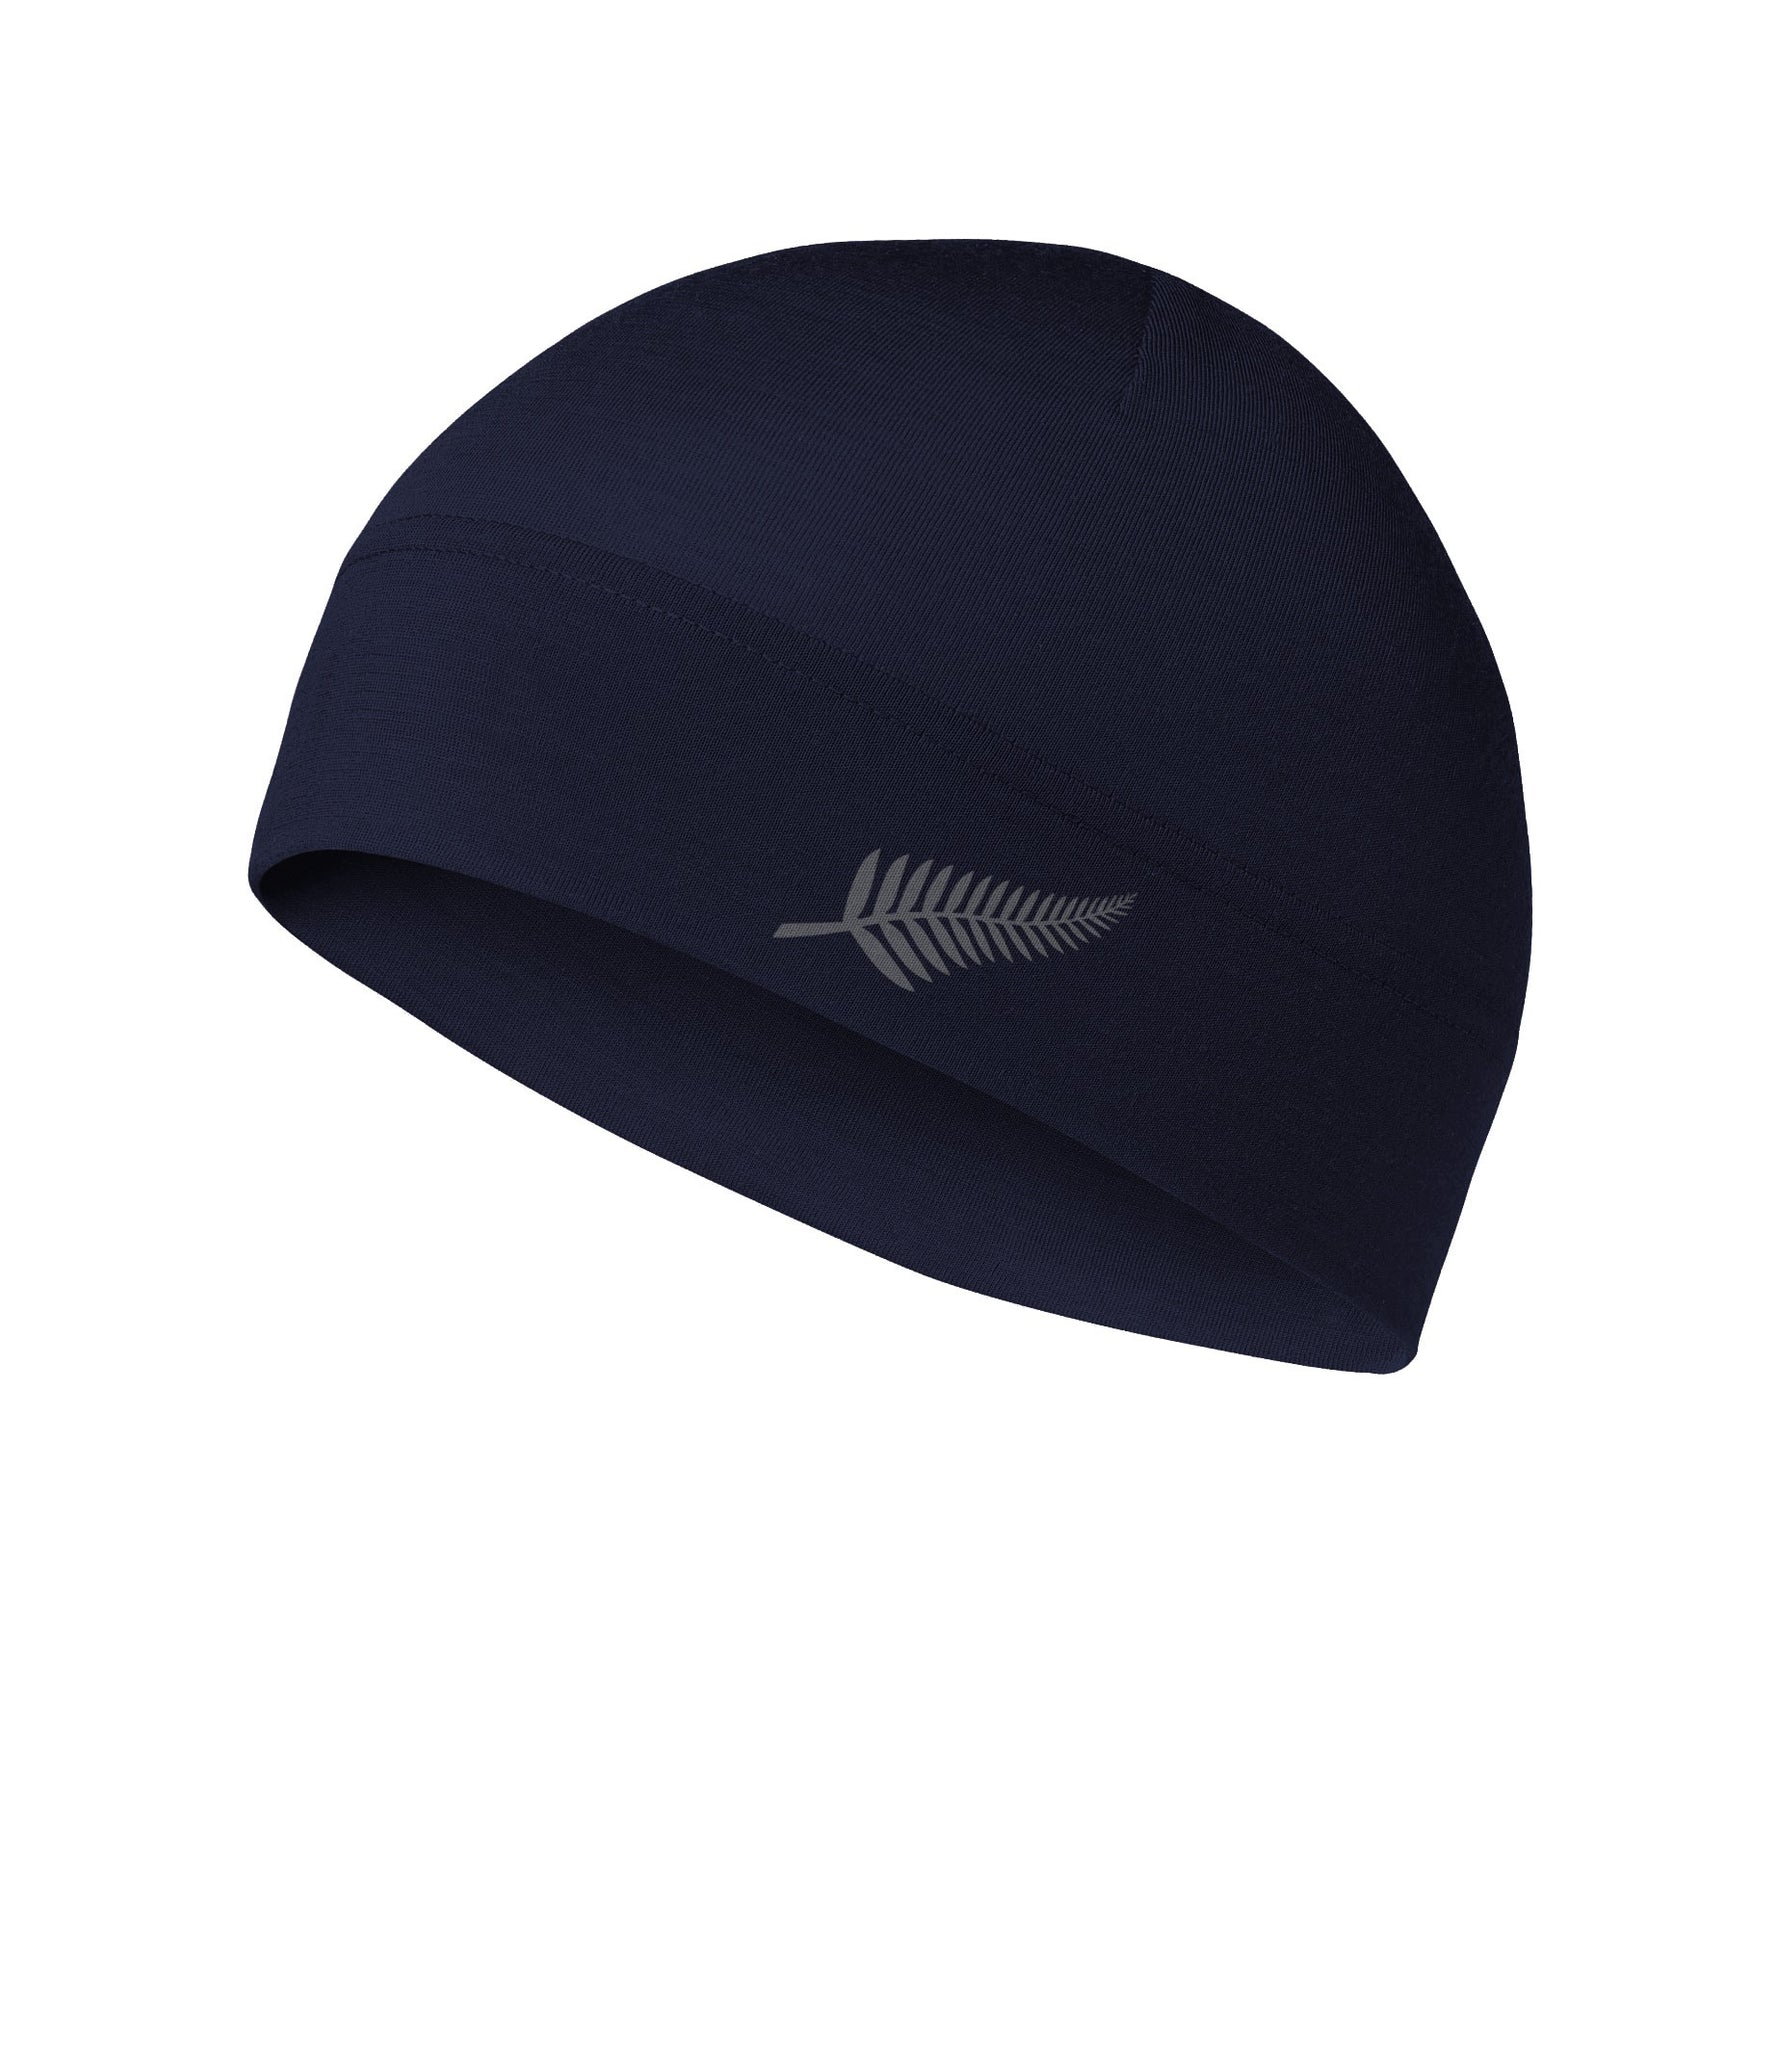 Merino Ink-Blue Beanie. Made in New Zealand